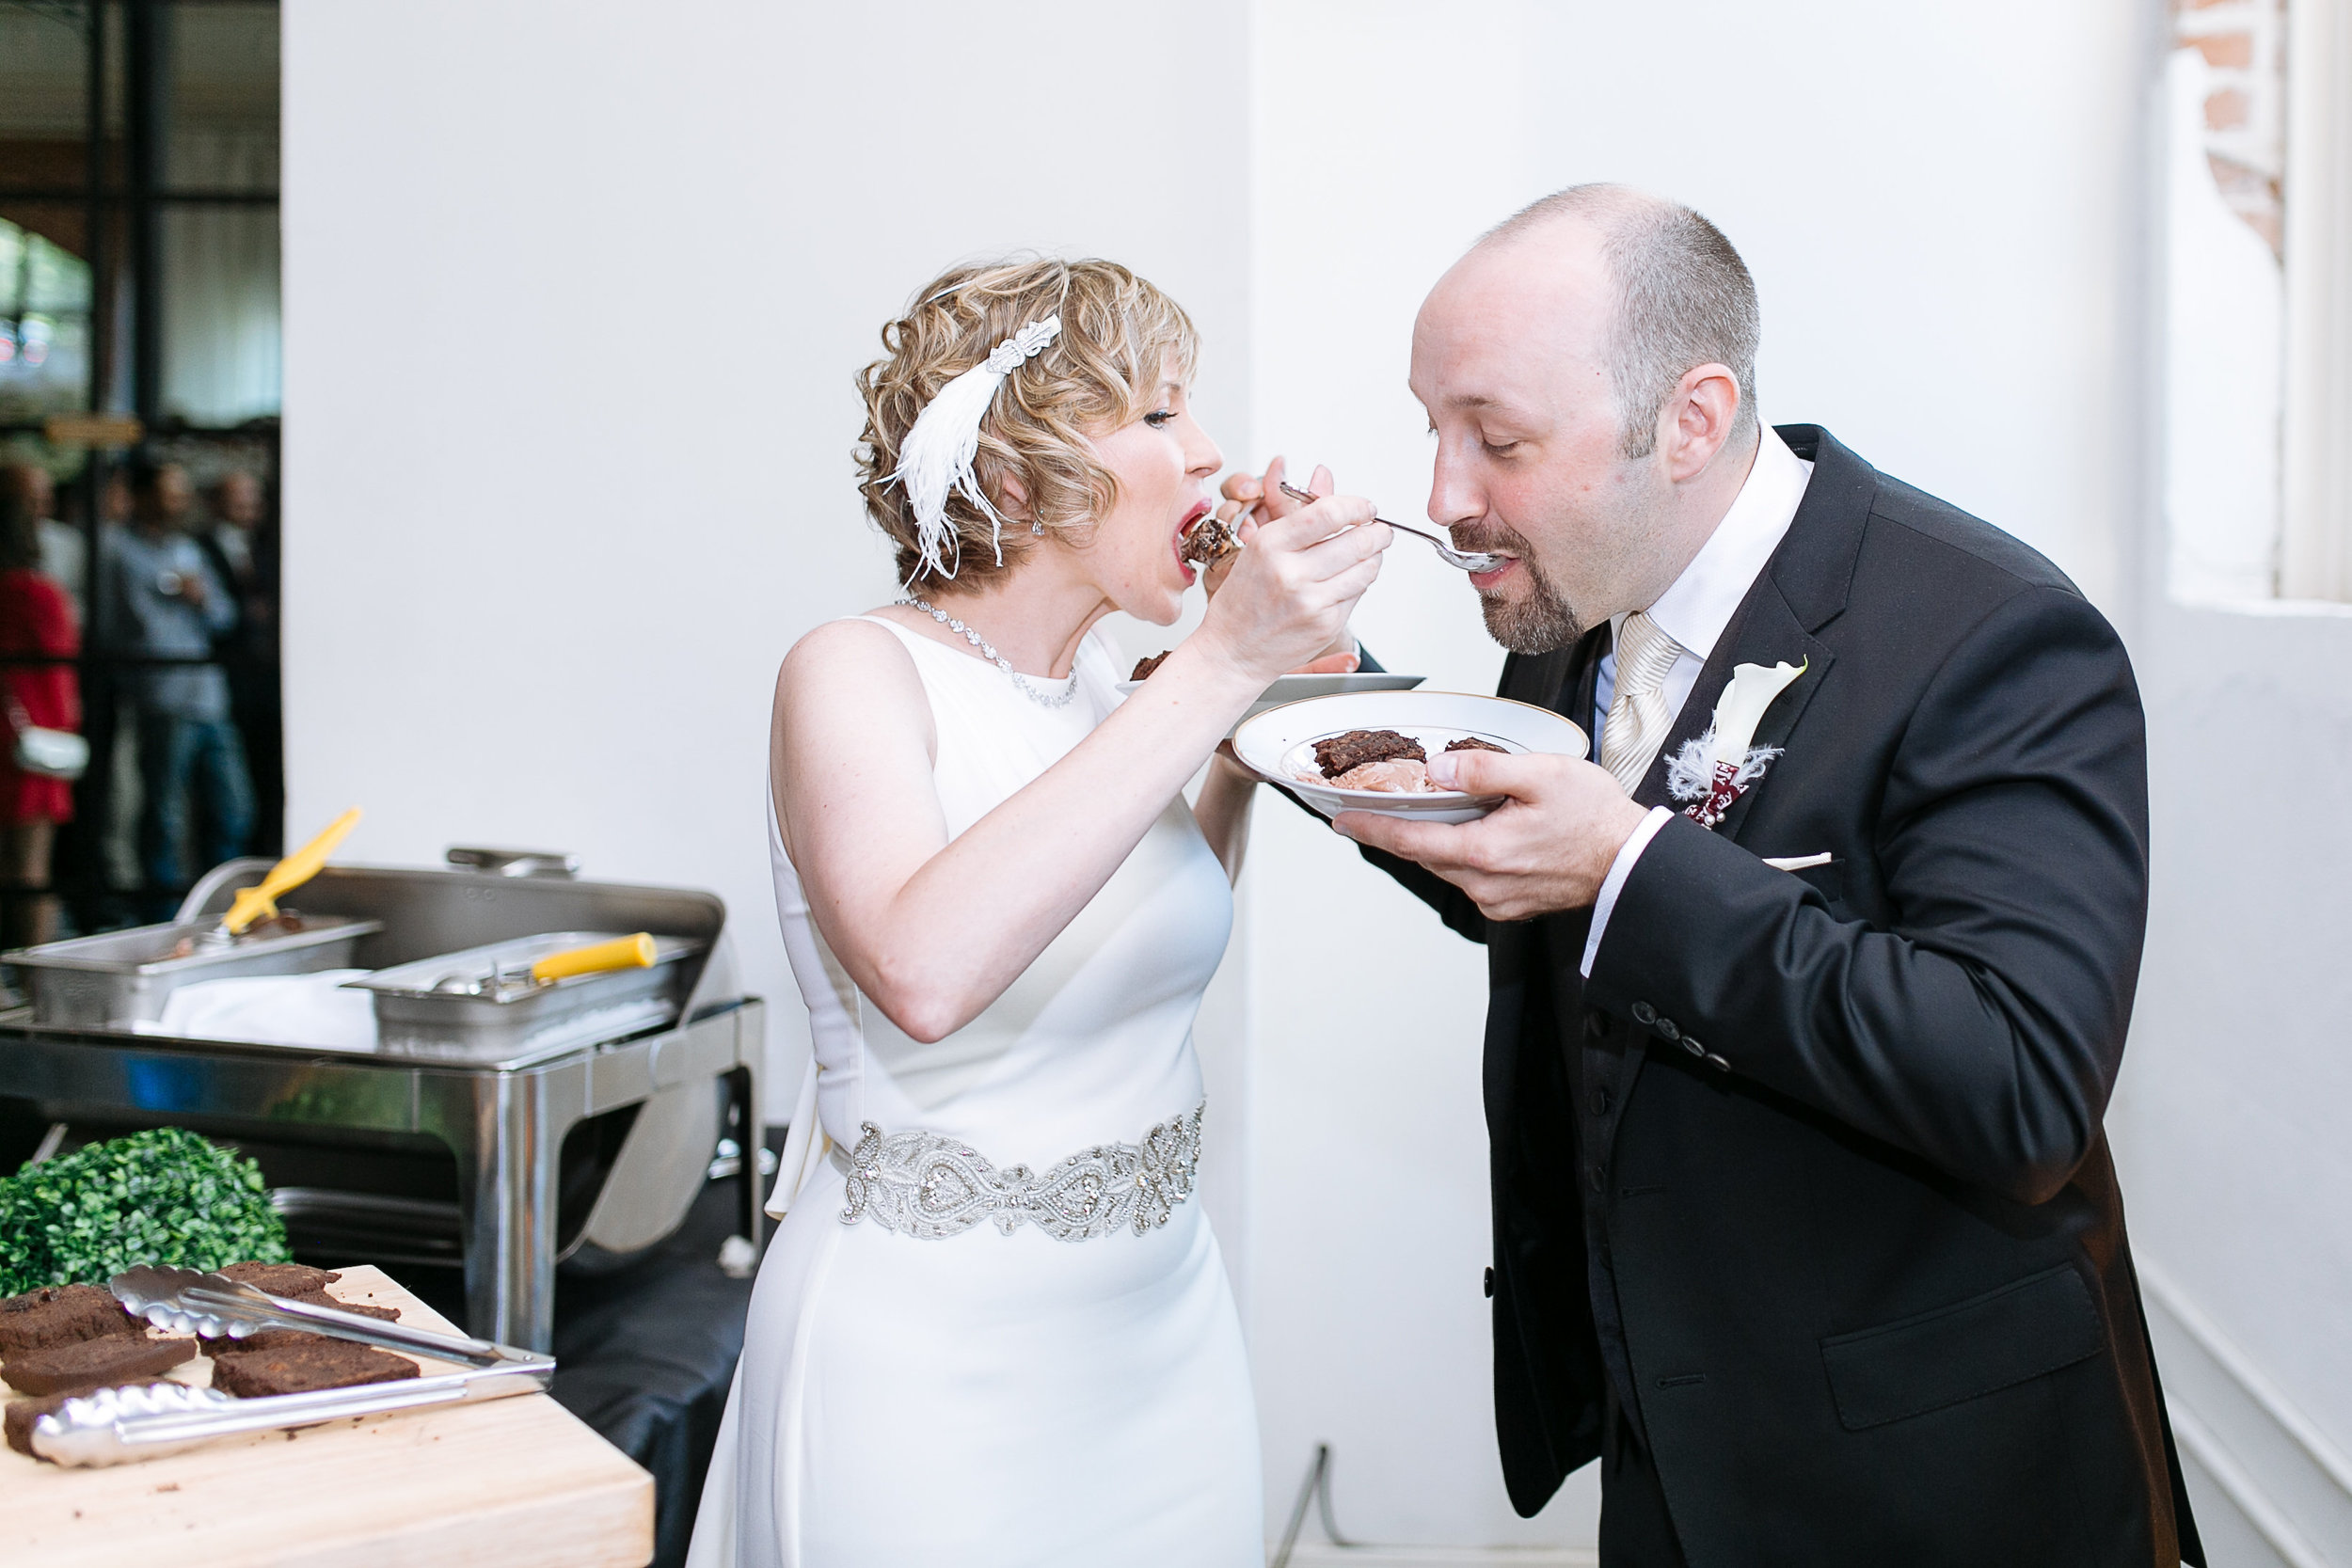 In lieu of a Wedding Cake the couple did a Brownie & Ice Cream Bar